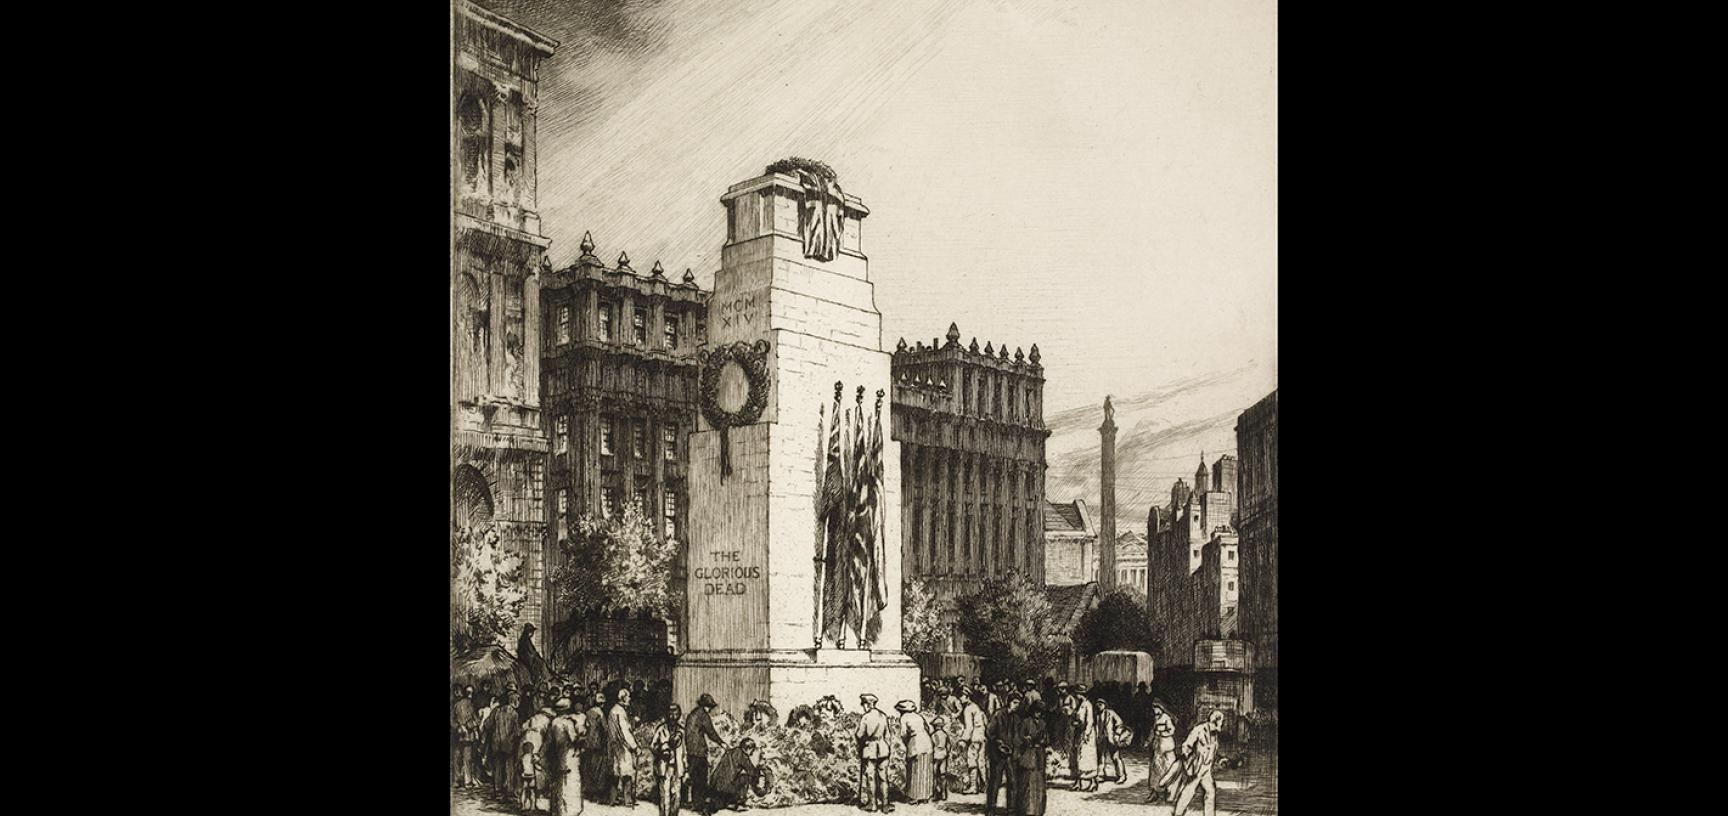 Stanley Anderson, The Cenotaph, 1919 © Ashmolean Museum, Presented by Arthur Mitchell, WA1964.75.1639